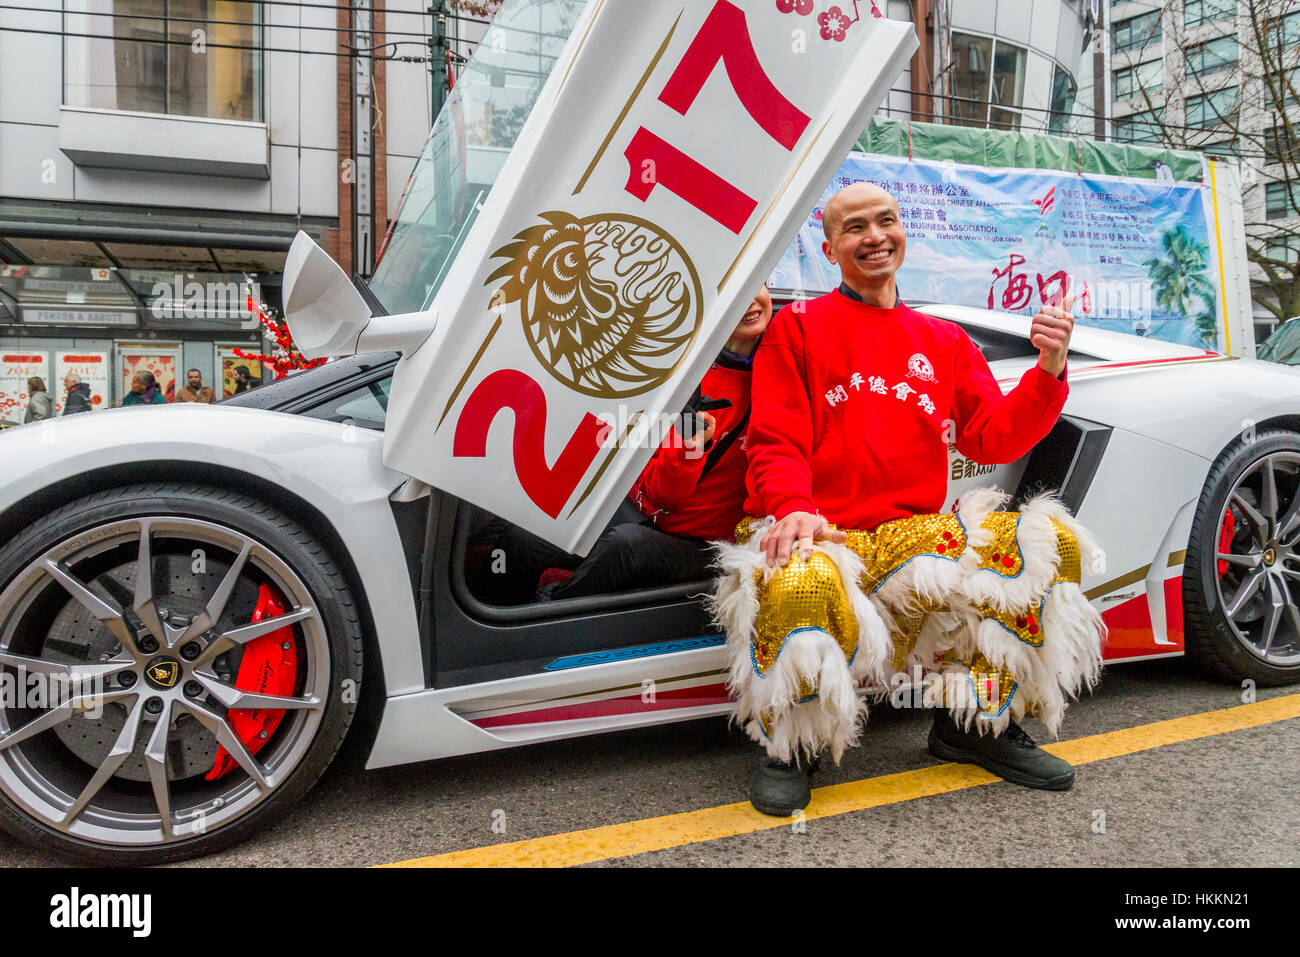 Vancouver, Canada. 29th January, 2017. Lamborghini sports car during the Chinese New Year parade Vancouver, British - Stock Image